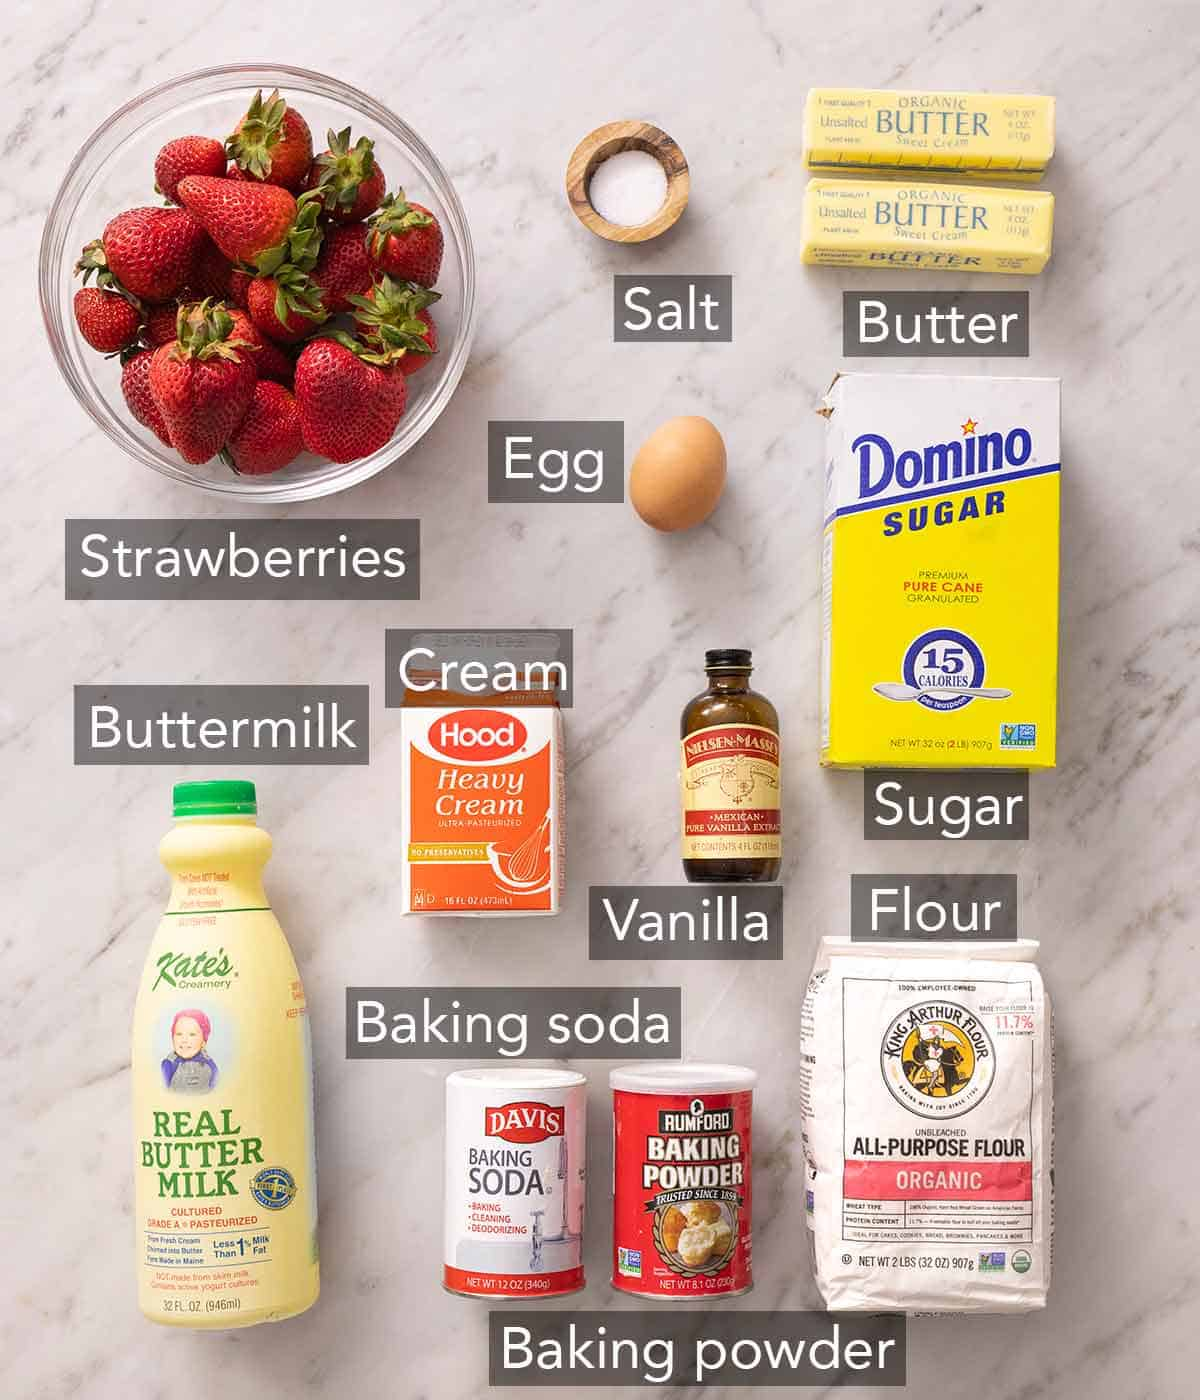 Ingredients needed to make strawberry shortcakes.